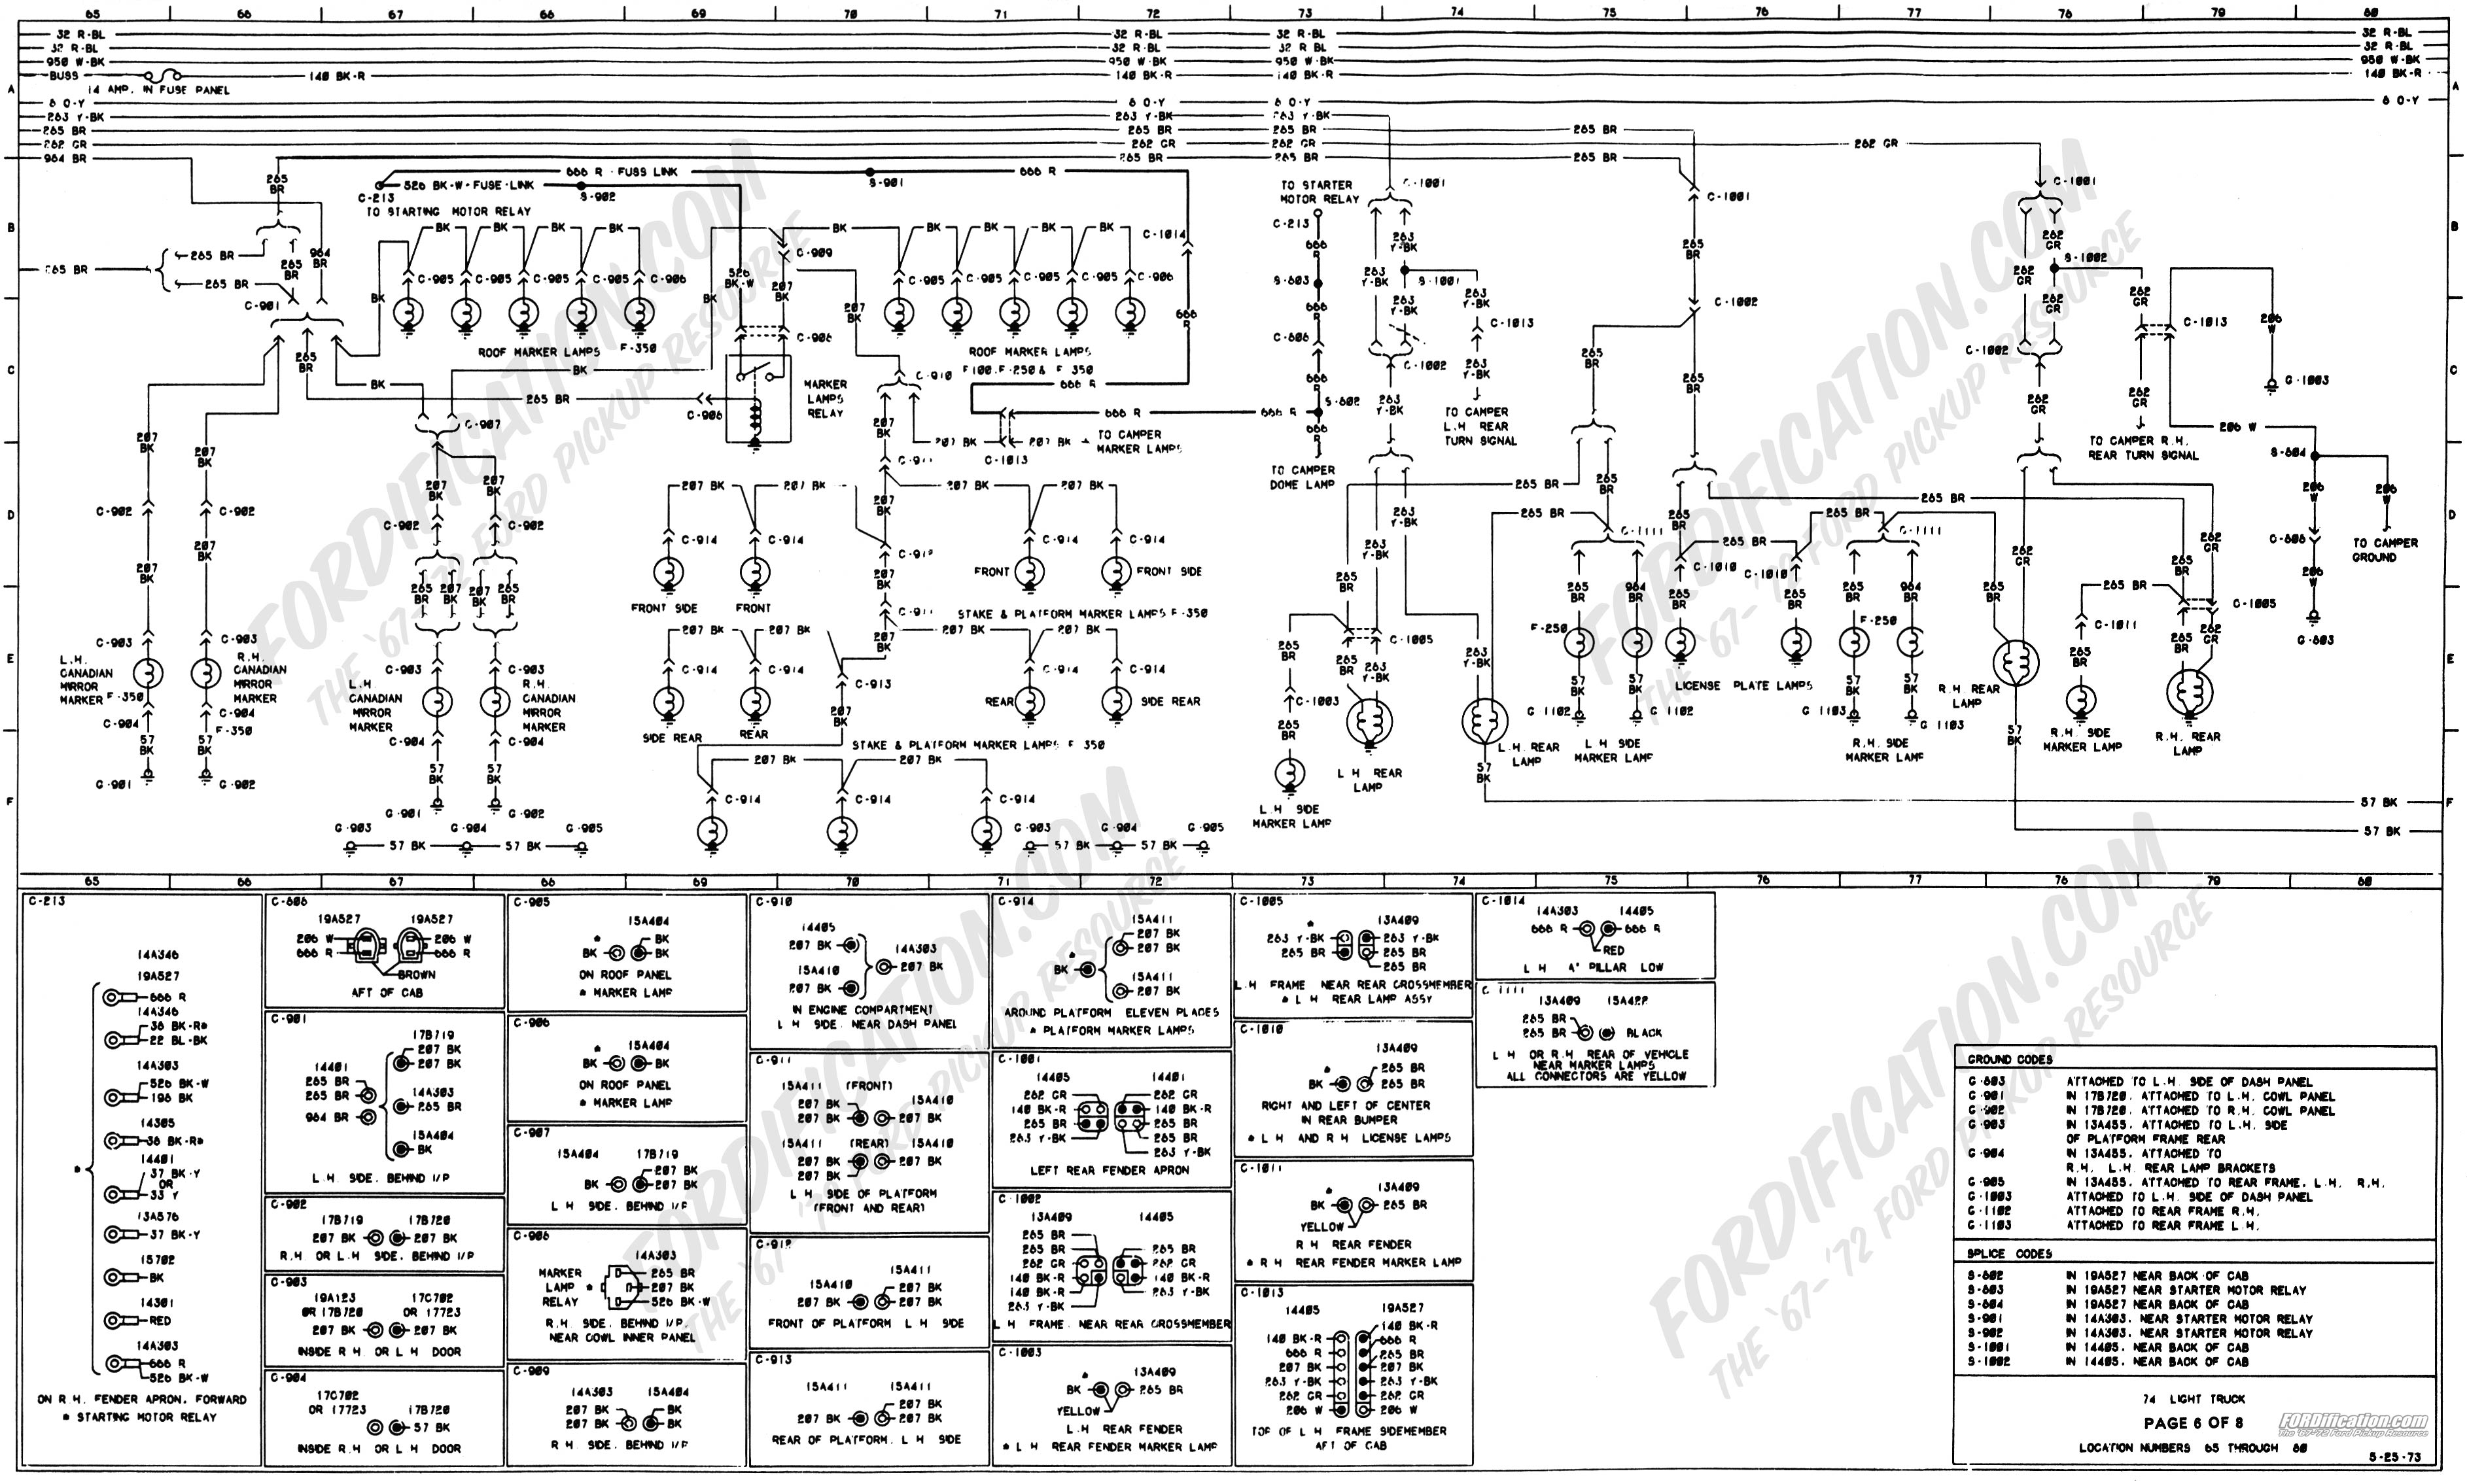 wiring_74master_6of8 1973 1979 ford truck wiring diagrams & schematics fordification net 1999 ford f350 wiring diagram at edmiracle.co